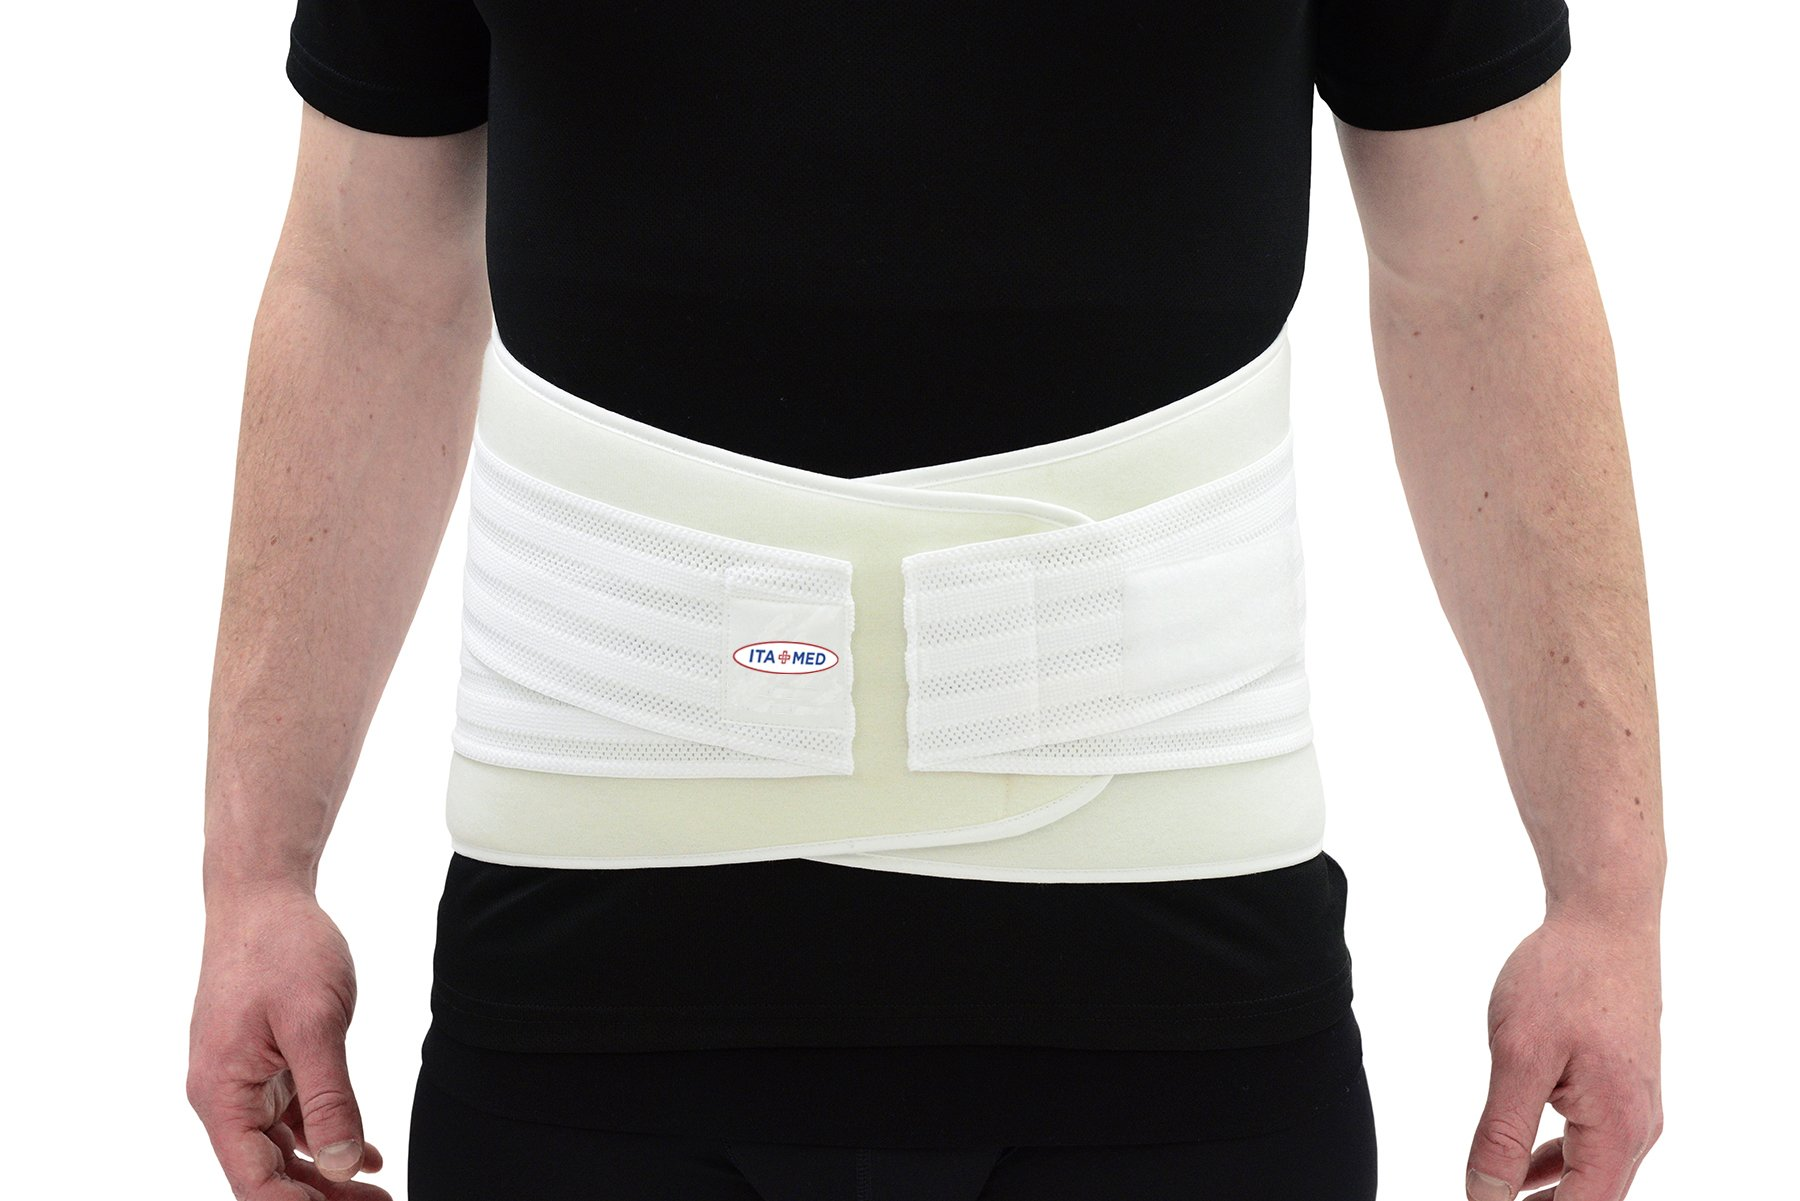 ITA-MED Elastic Duo Adjustable Lumbo-Sacral Back Support, Universal Size,White